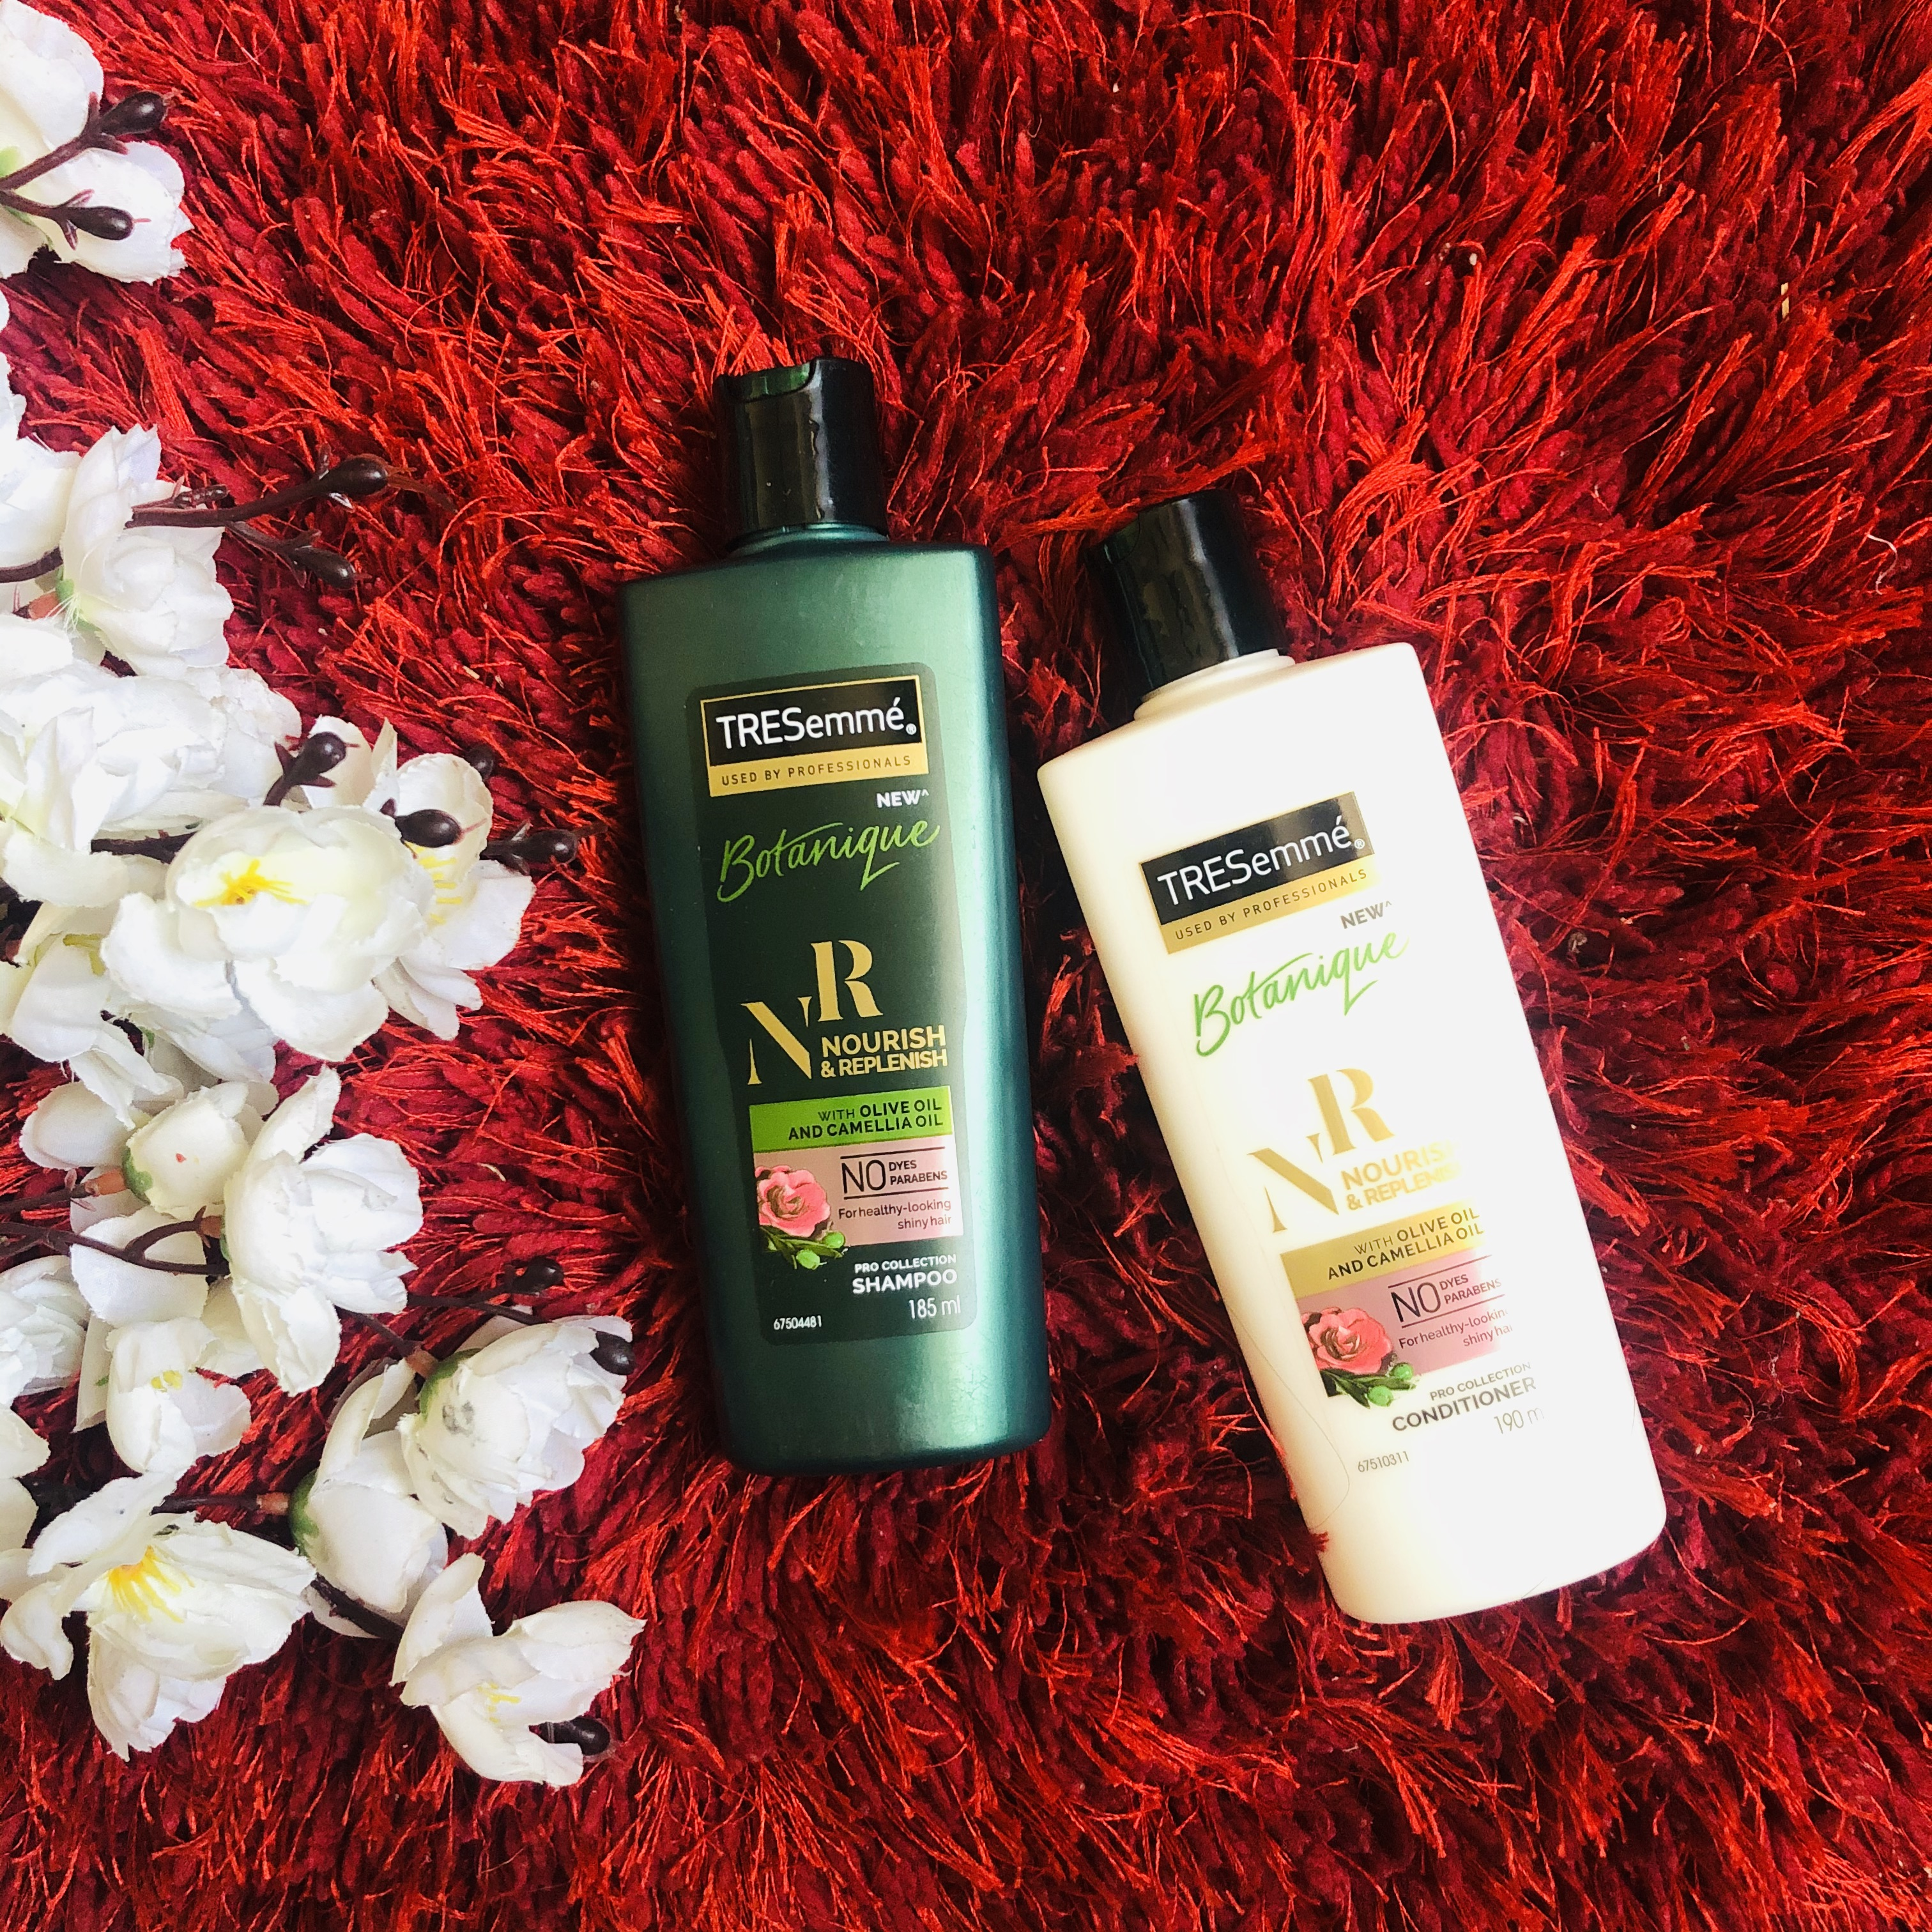 Tresemme Botanique Nourish And Replenish Shampoo-Favorite shampoo for Frizz Control-By karry